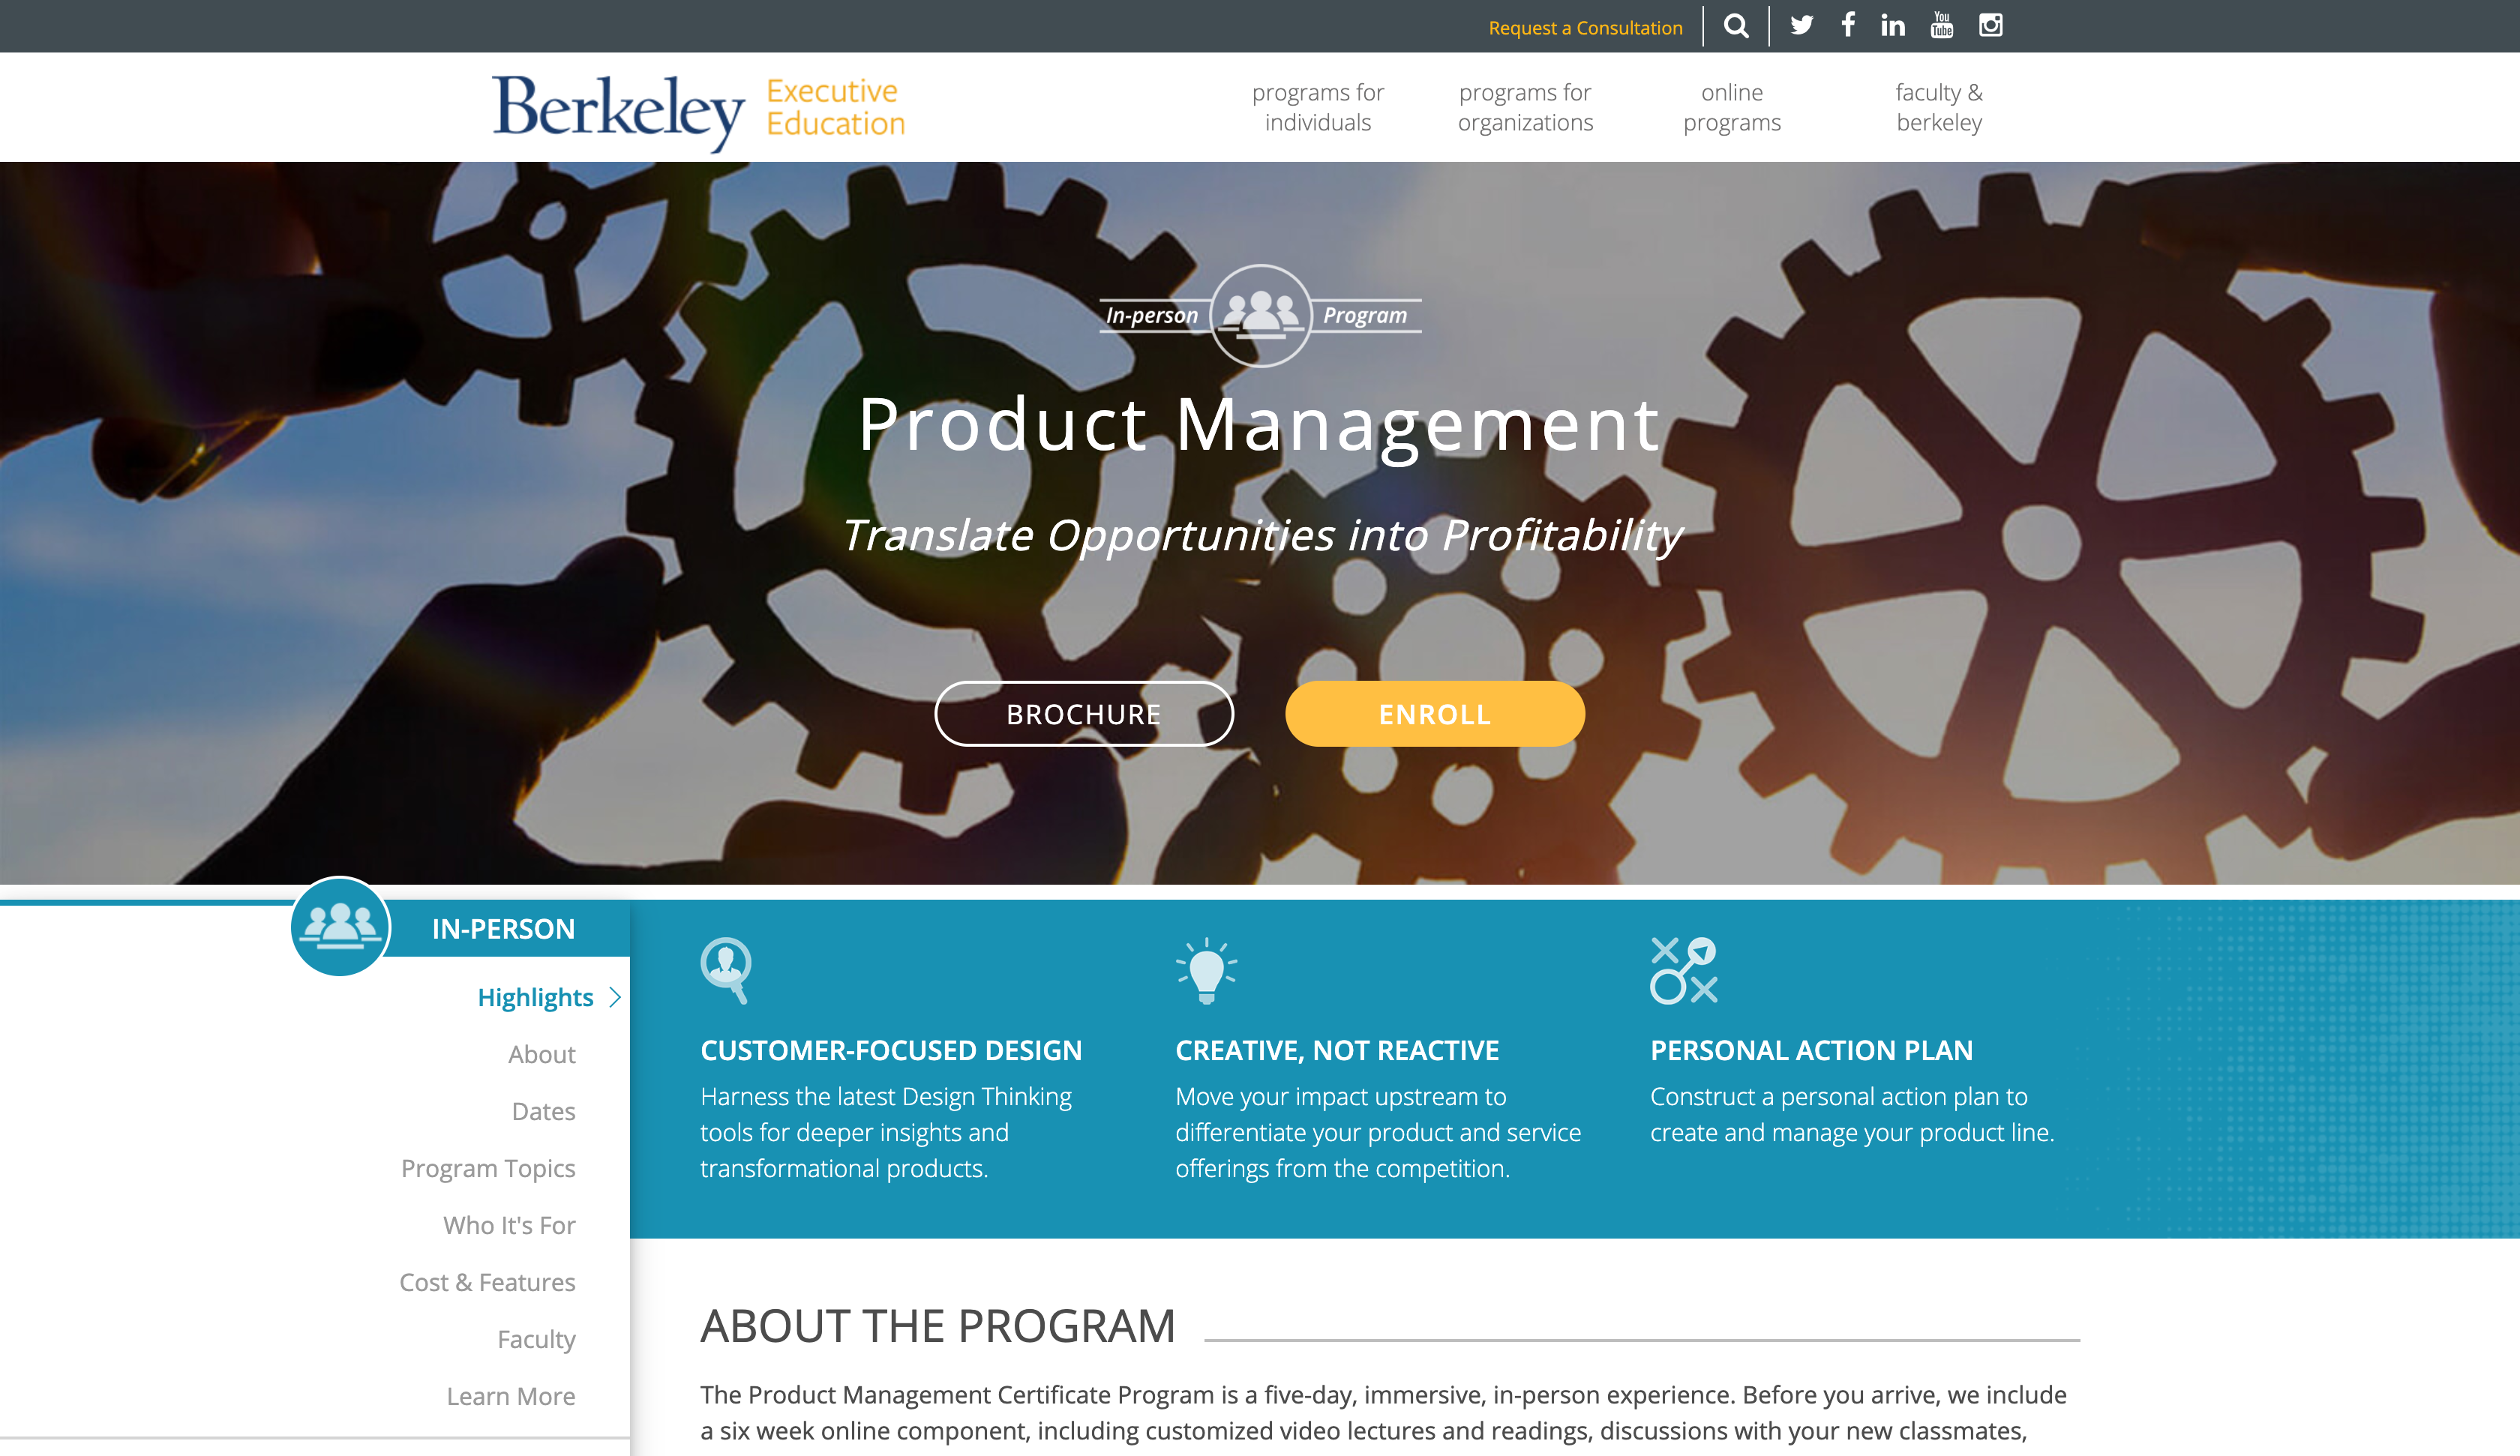 Product Management Program (Berkeley Executive Education)